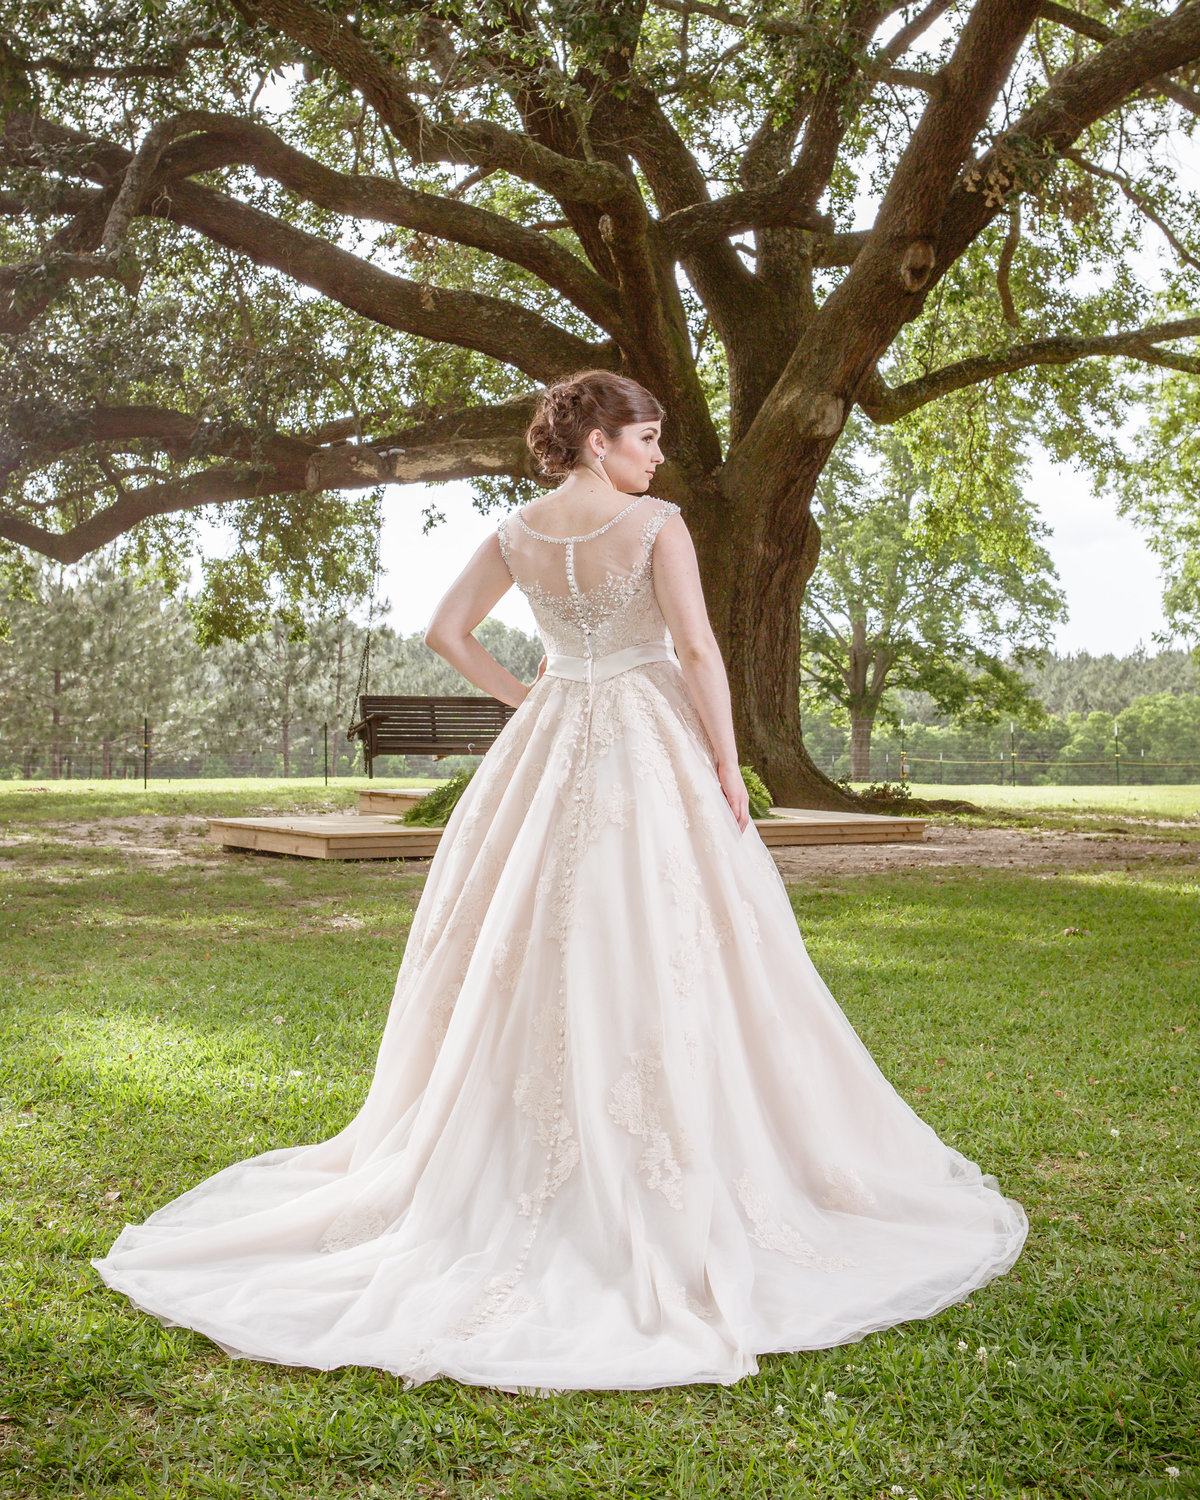 Carlyn Mothershed bridal photo at her home in Foley, Alabama.